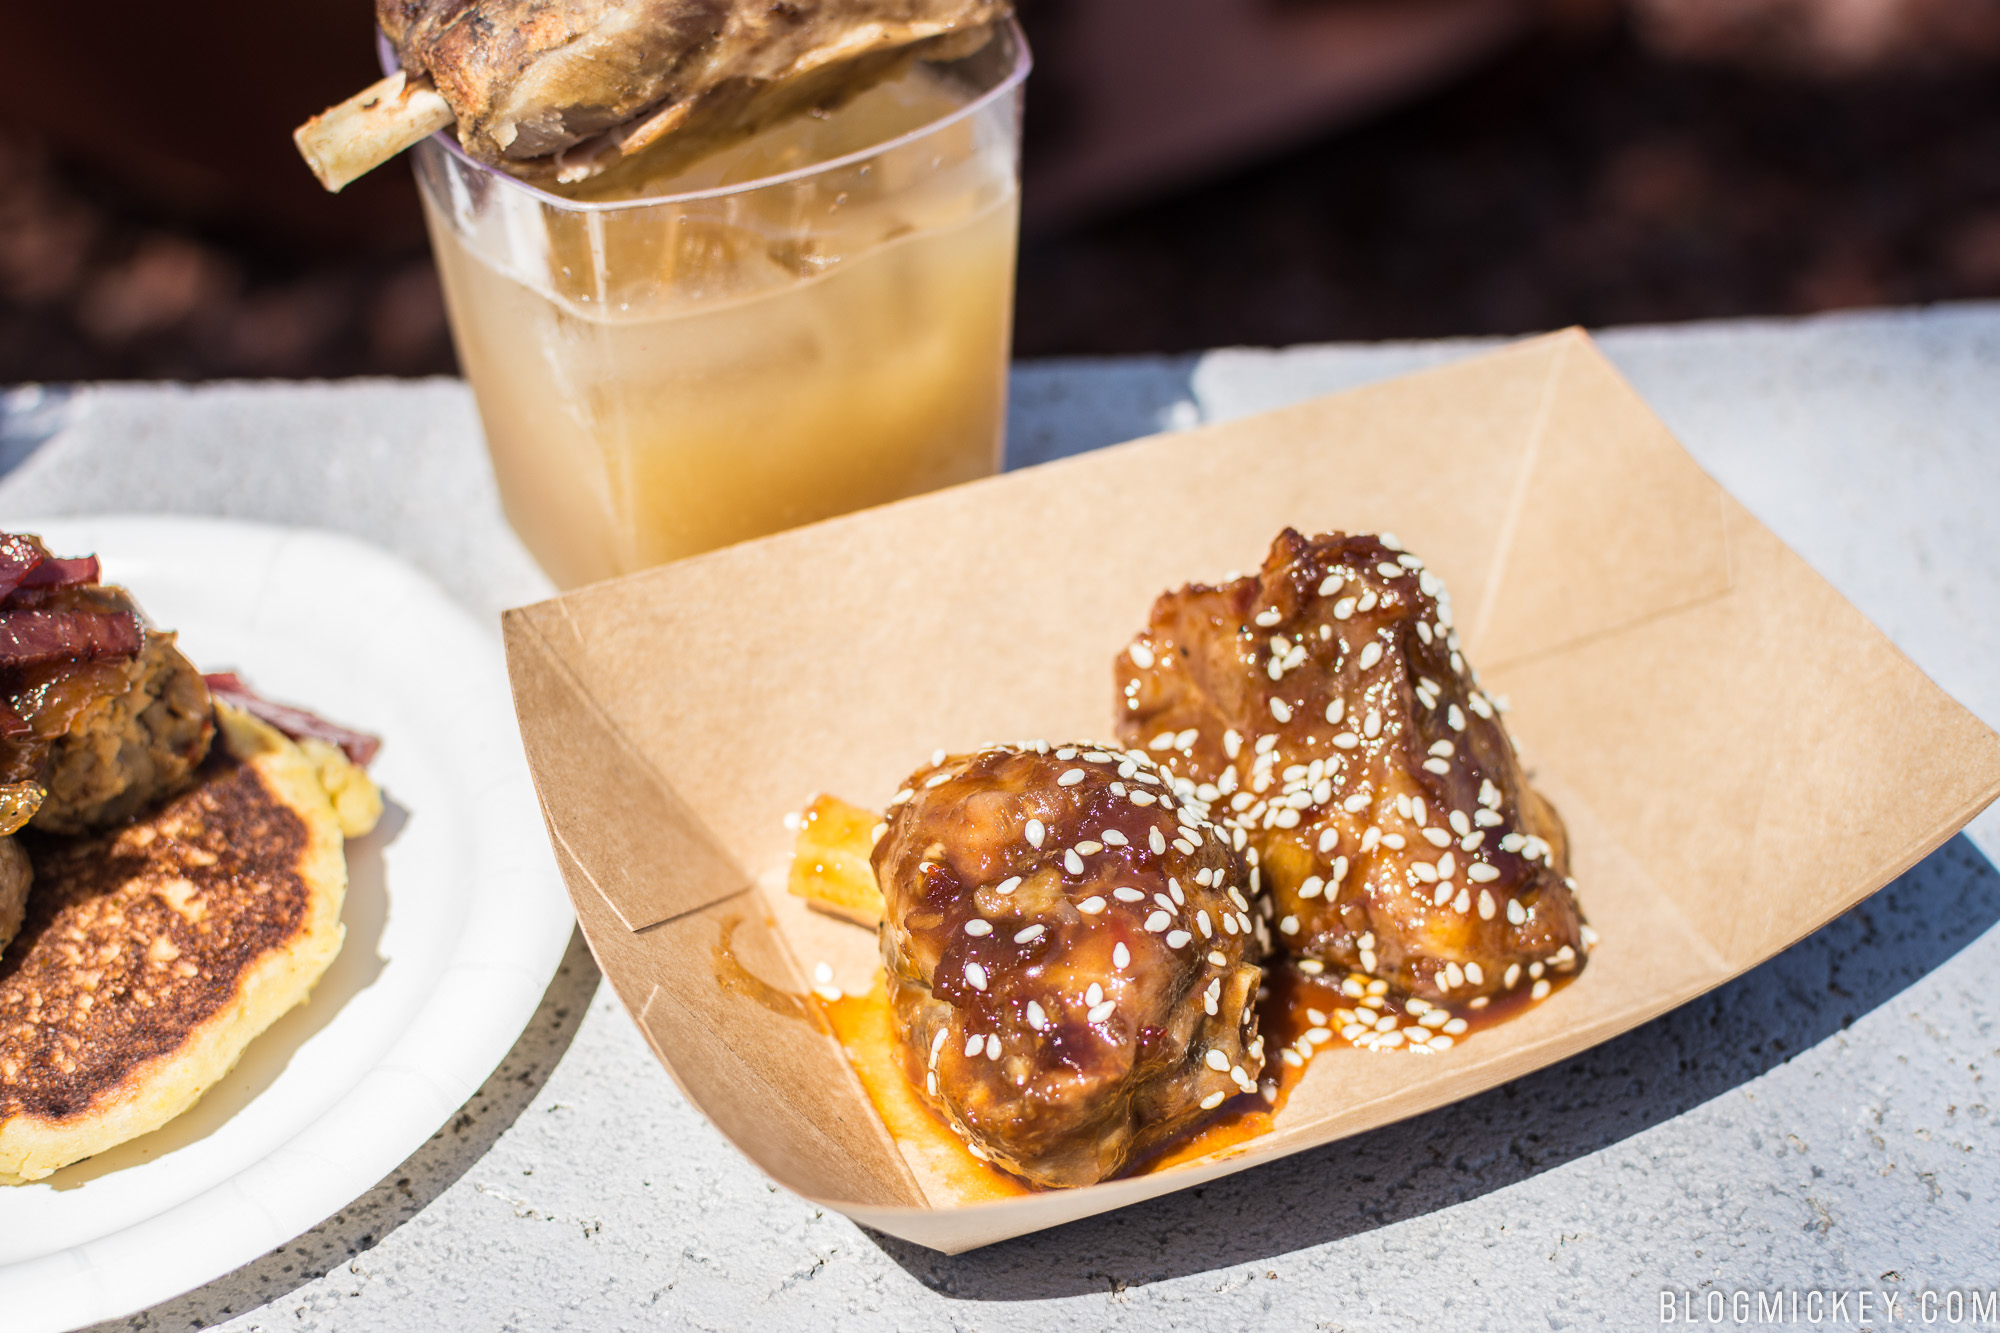 4eee37fe04 REVIEW: 2017 Epcot International Food and Wine Festival Food - Blog ...